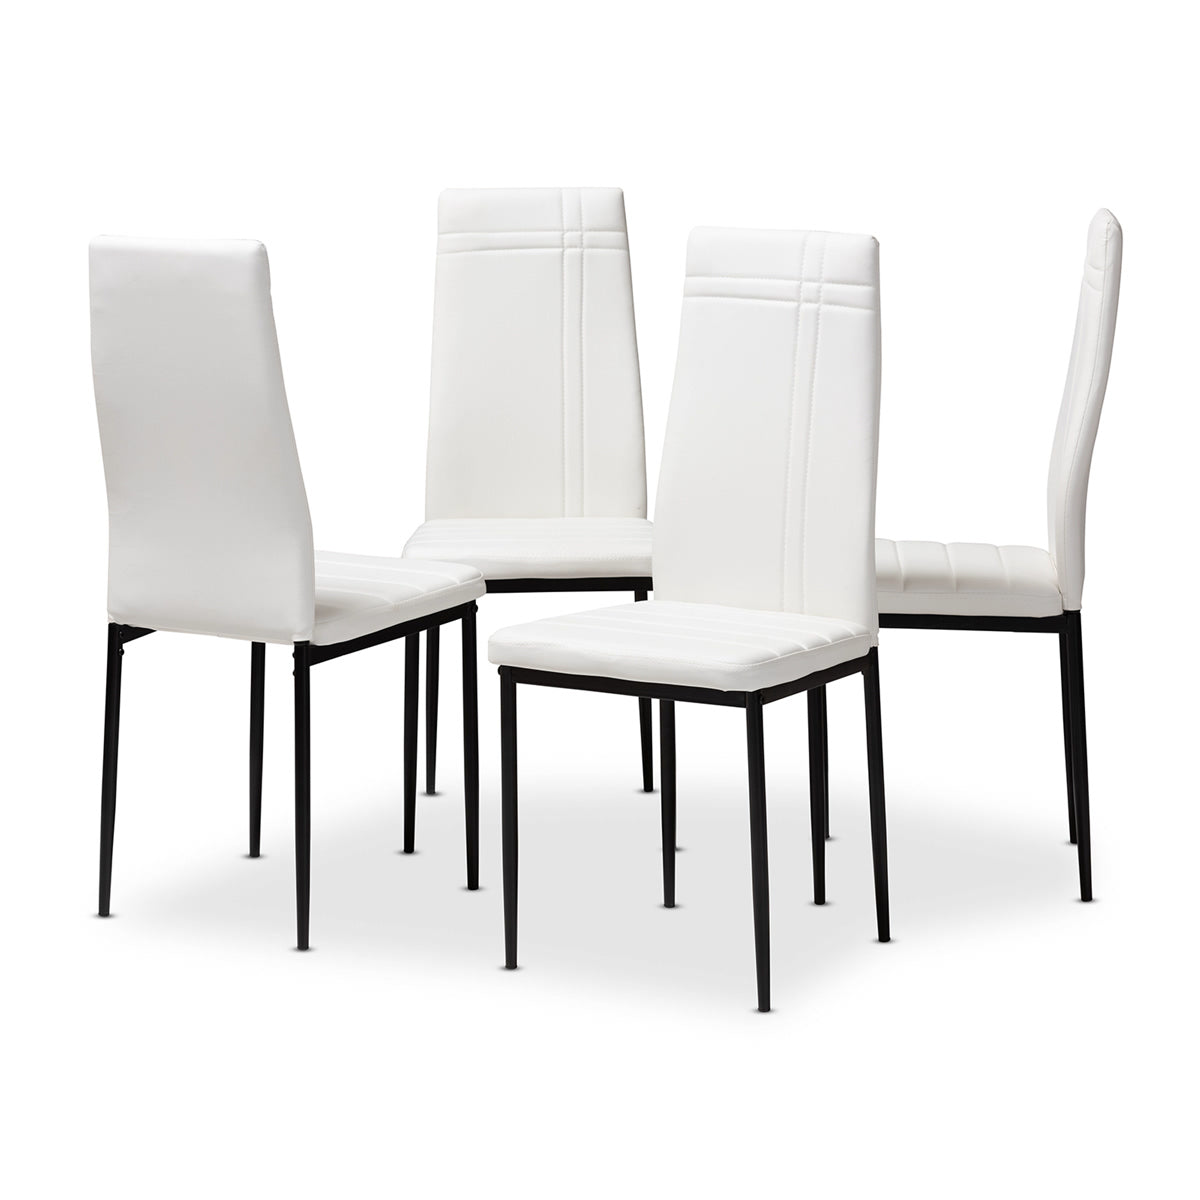 Baxton Studio Matiese Modern and Contemporary White Faux Leather Upholstered Dining Chair (Set of 4) Baxton Studio-dining chair-Minimal And Modern - 1